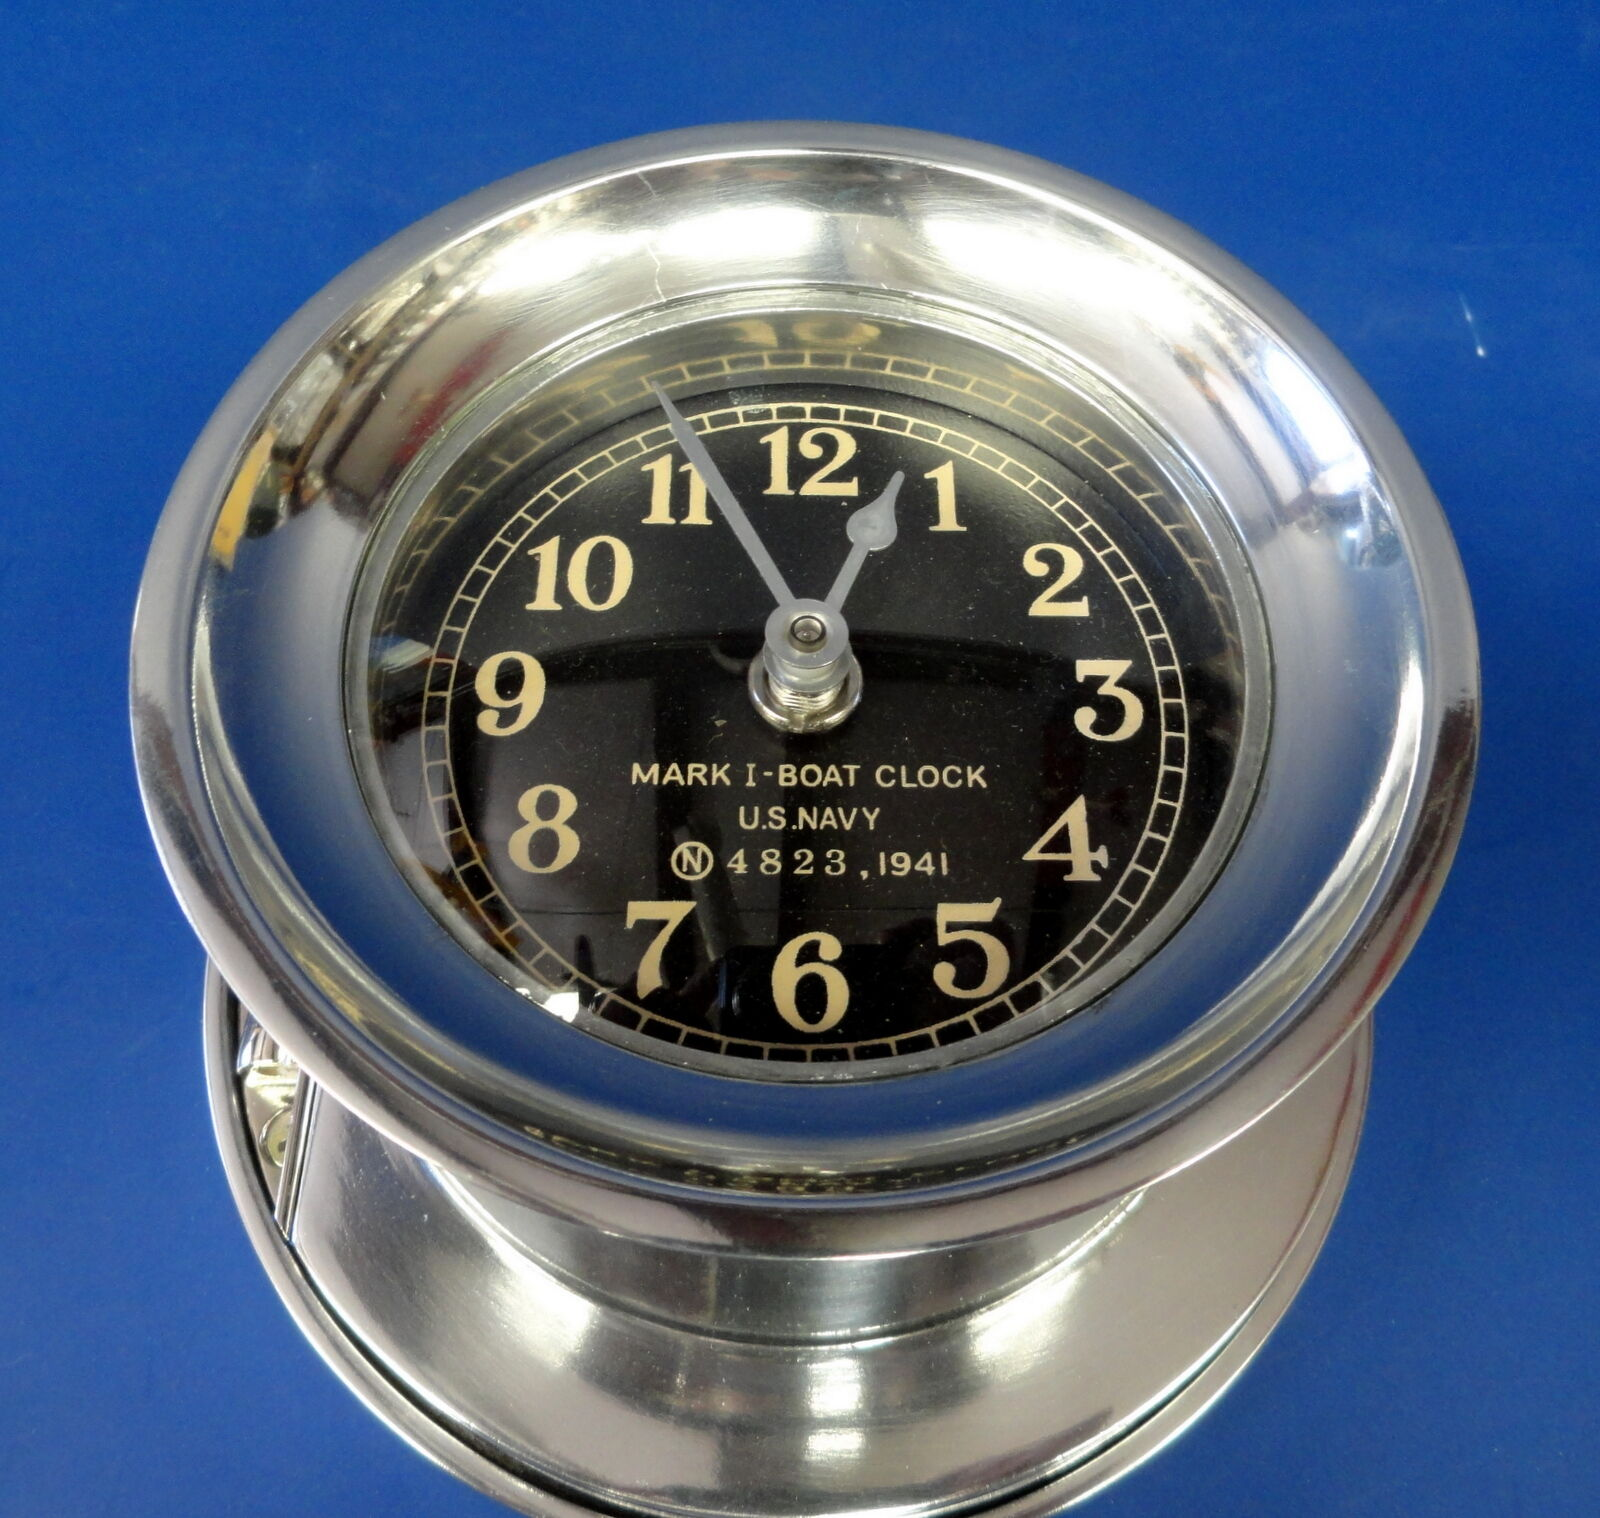 NEW CONDITION US NAVY MKI BOAT CLOCK 1941